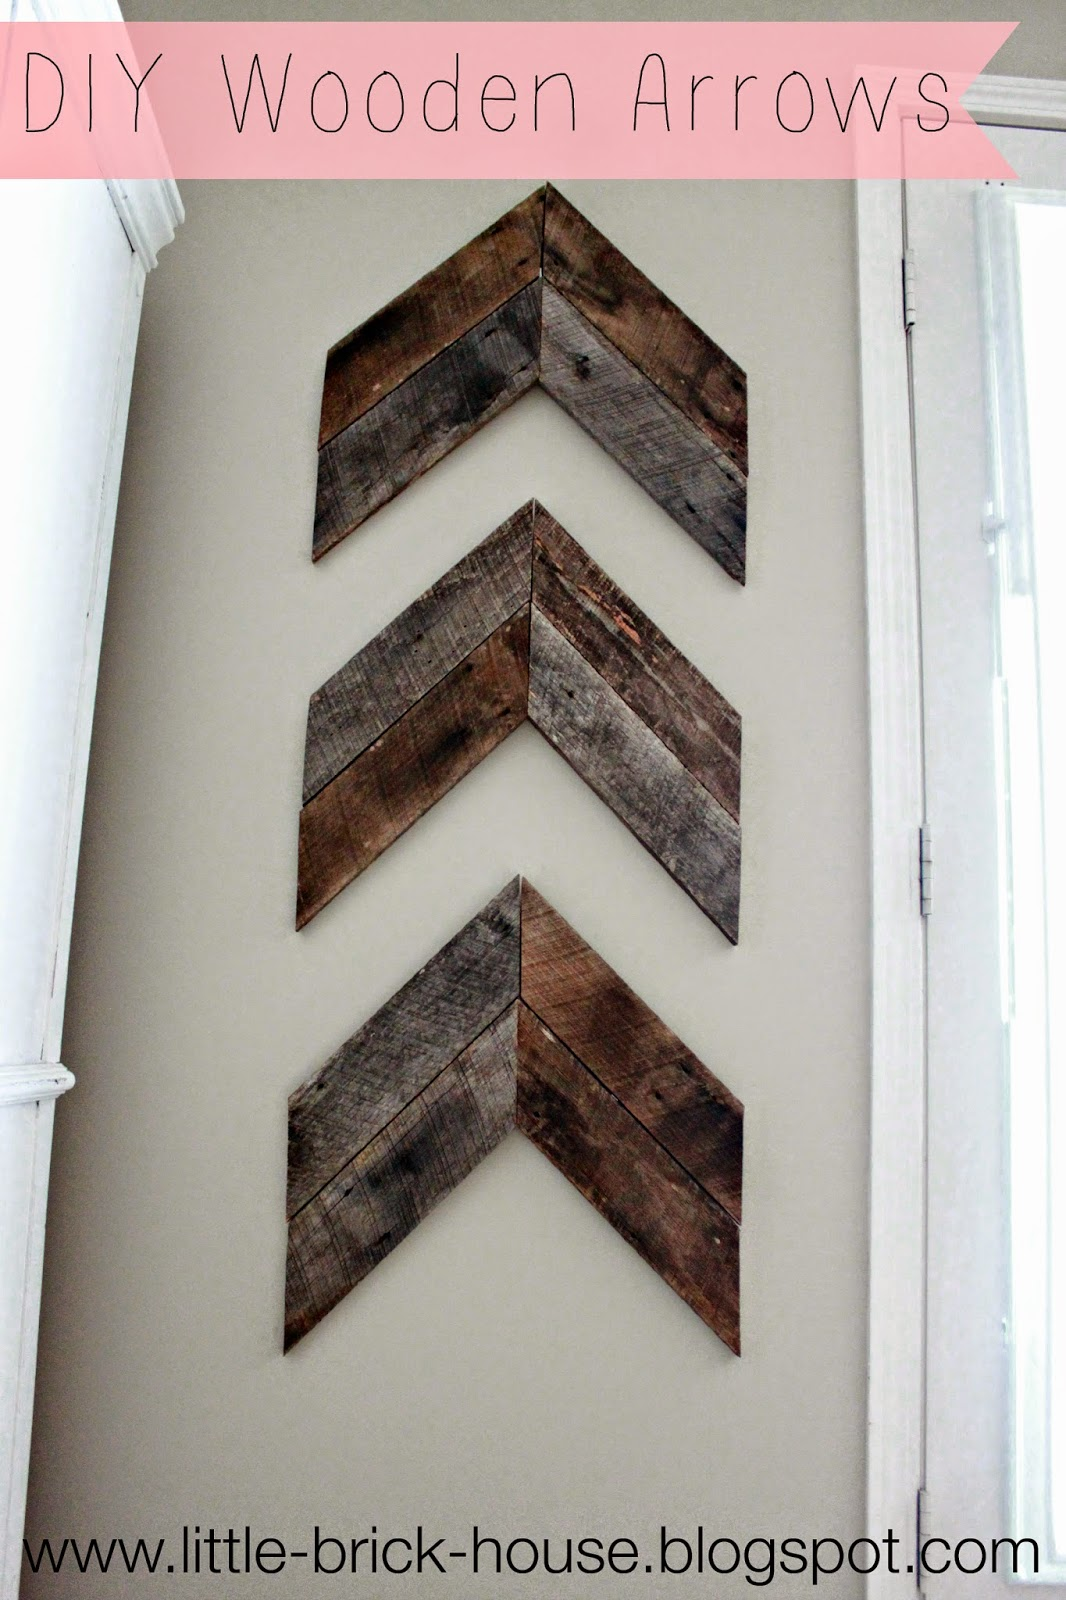 Little brick house reclaimed wood project diy wooden arrows for Diy brick projects